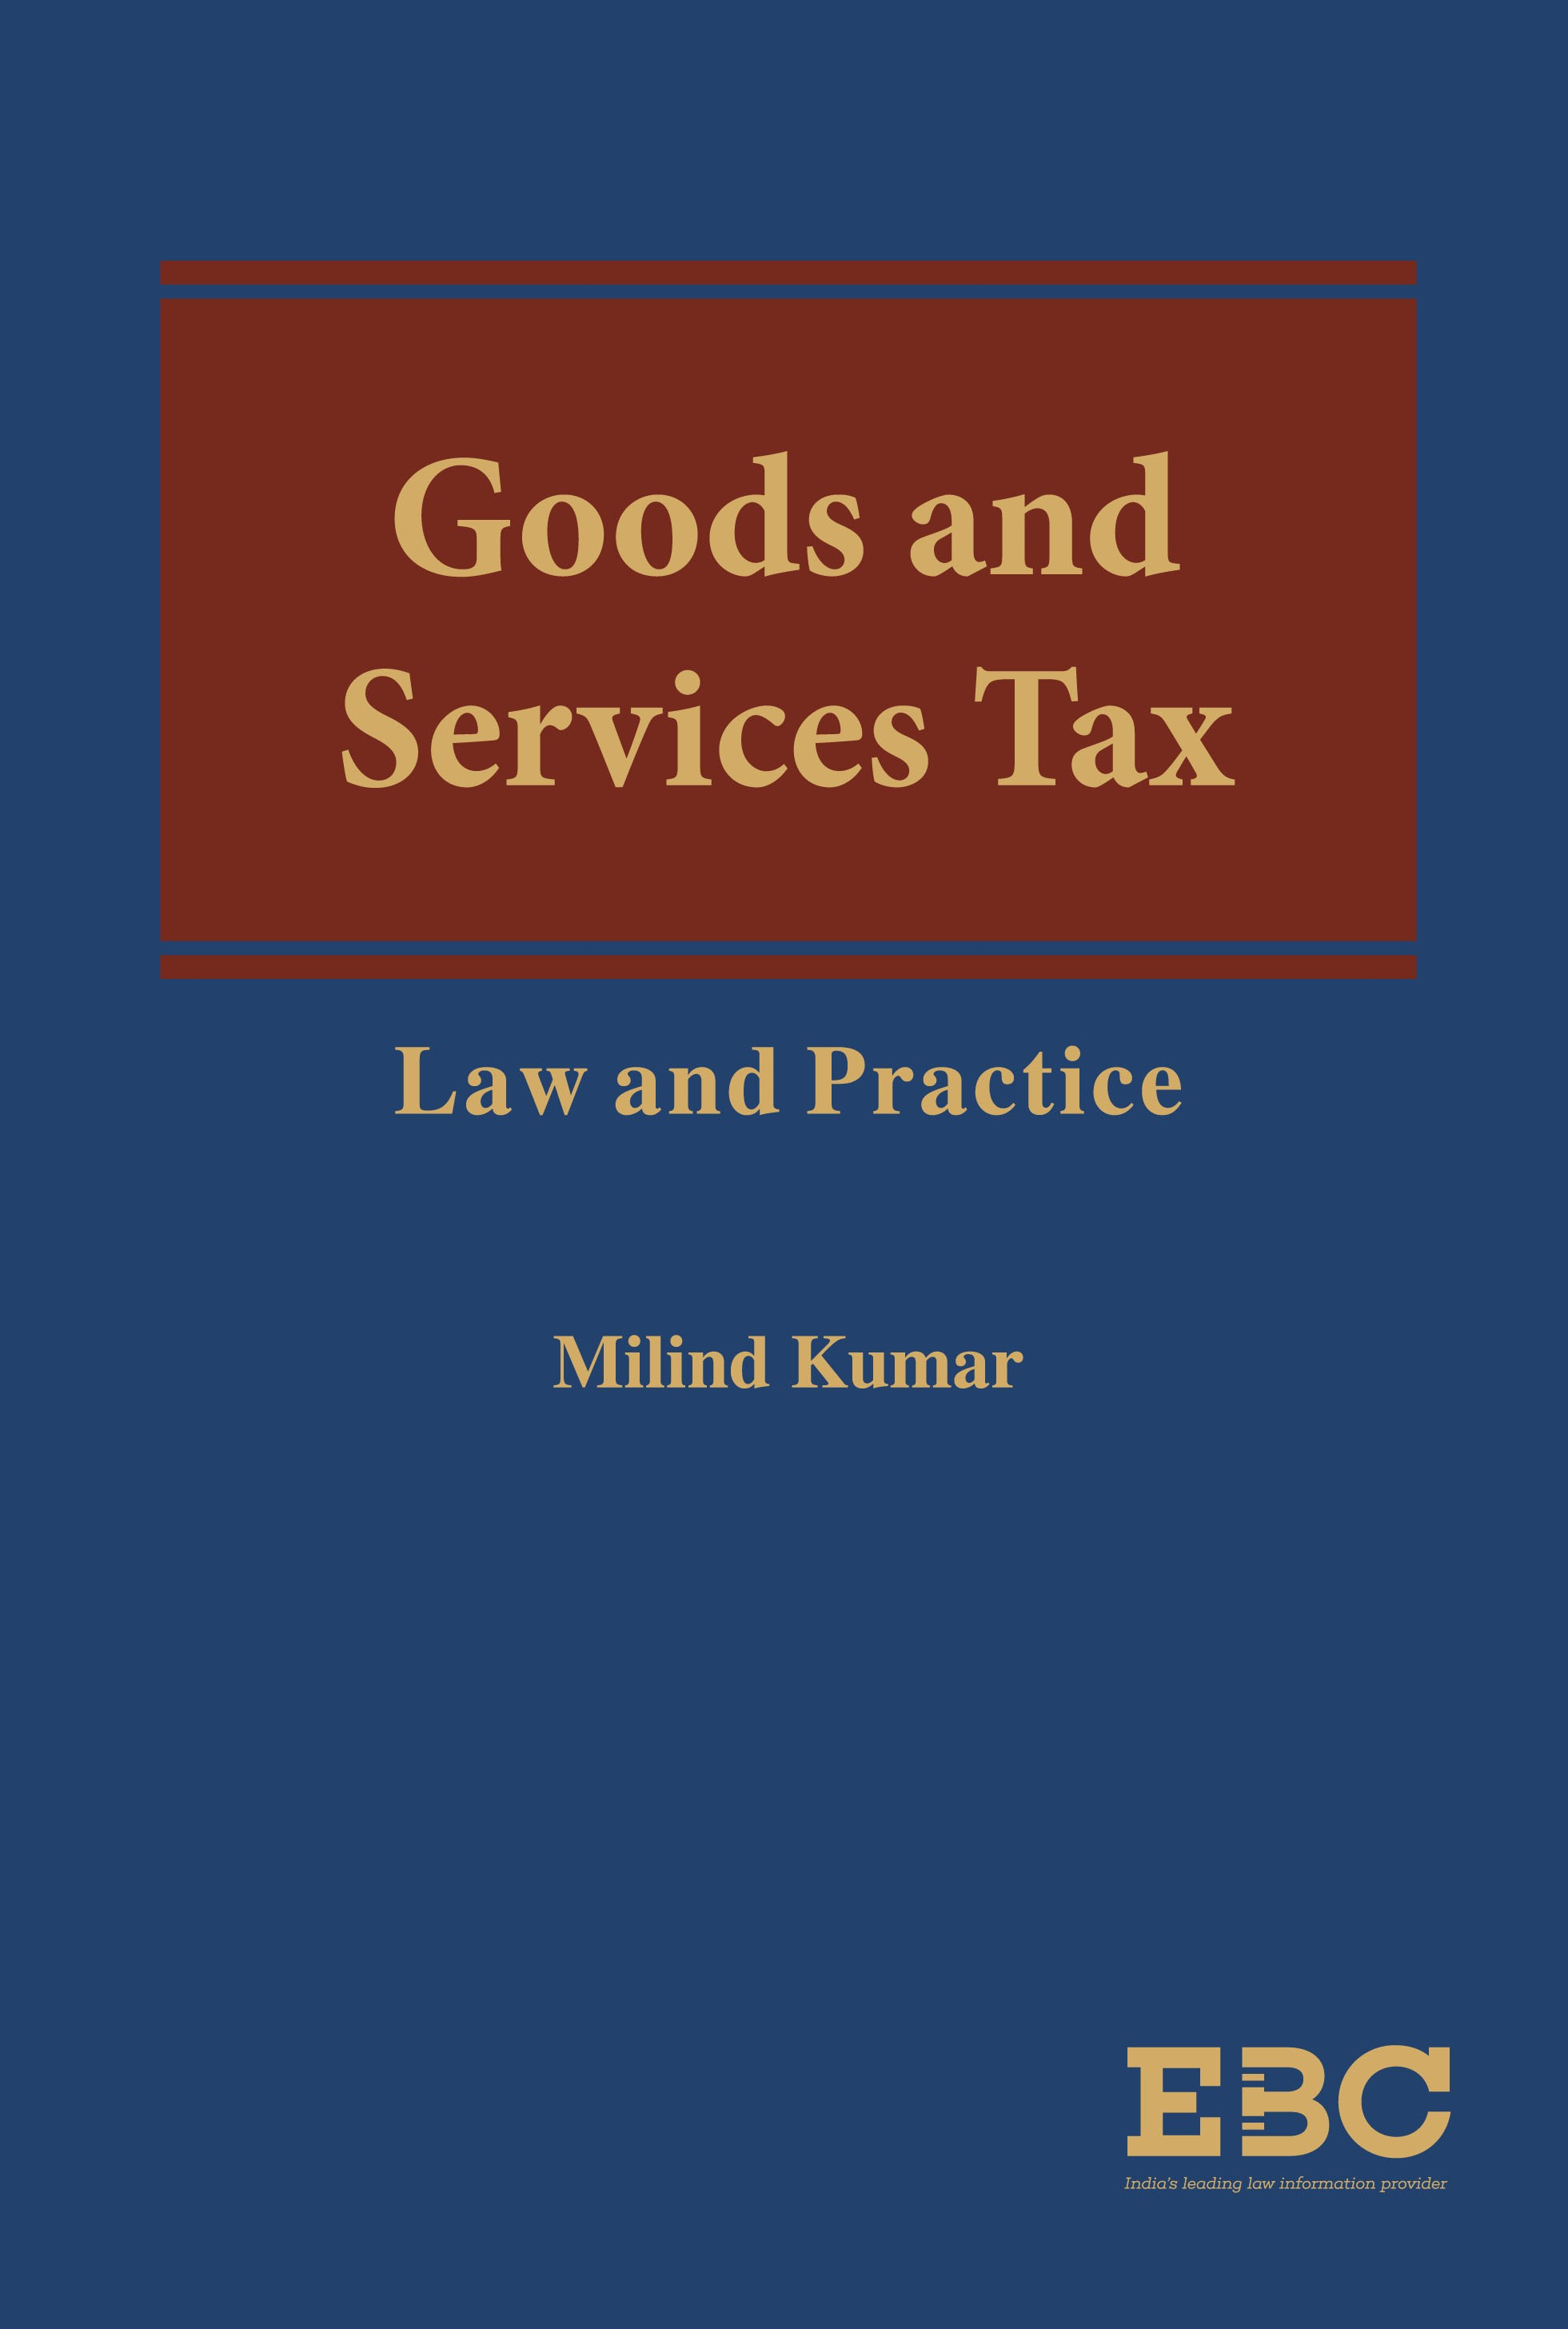 Goods and Services Tax: Law and Practice